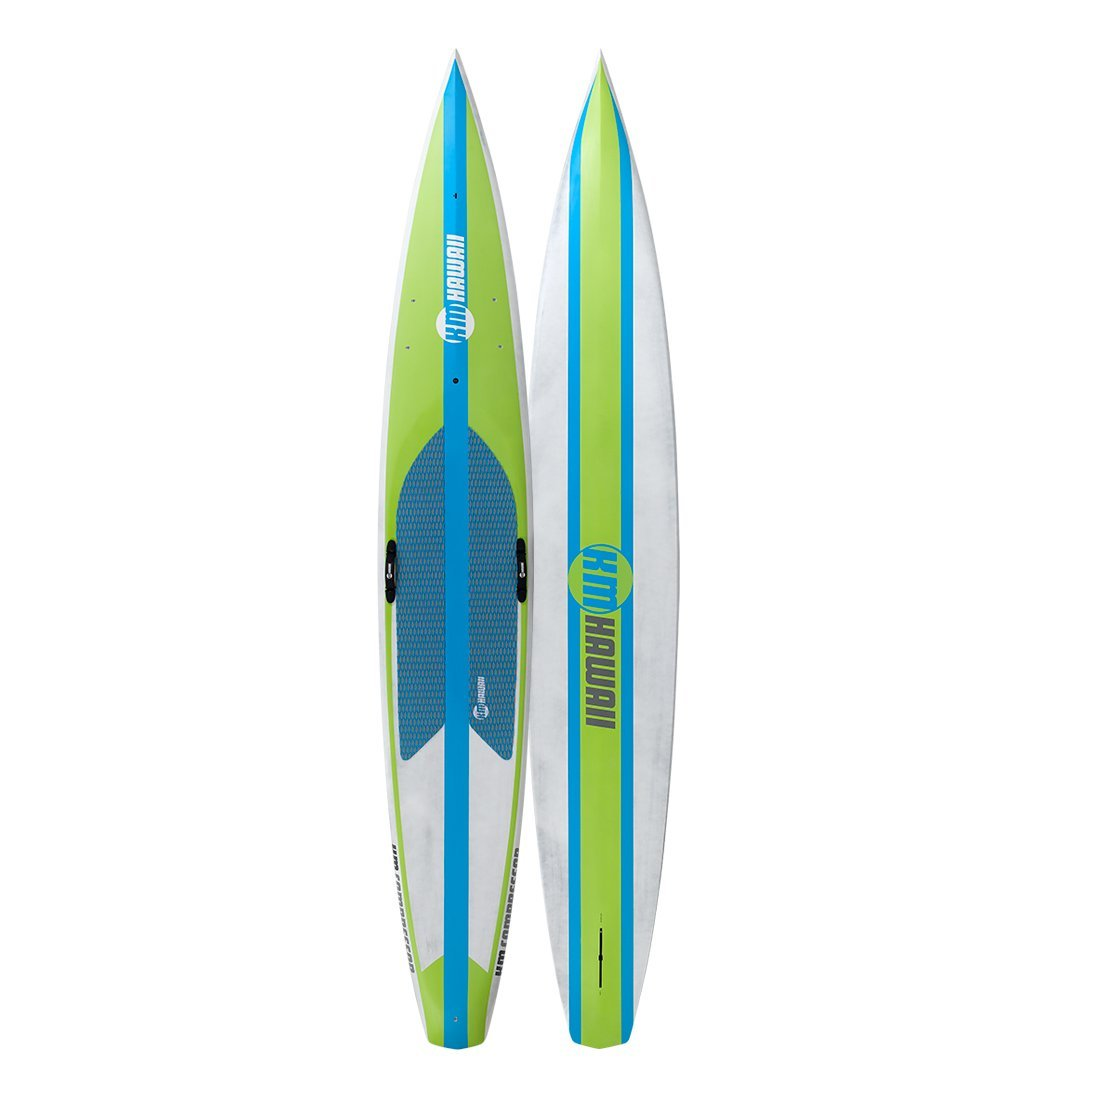 "KM Hawaii CompressorHP - Green-Blue - 14'0"" x 24"" Carbon Fiber Performance Standup Paddle Board Paddle Boards 4theoutdoors America US USA SUP outdoors"